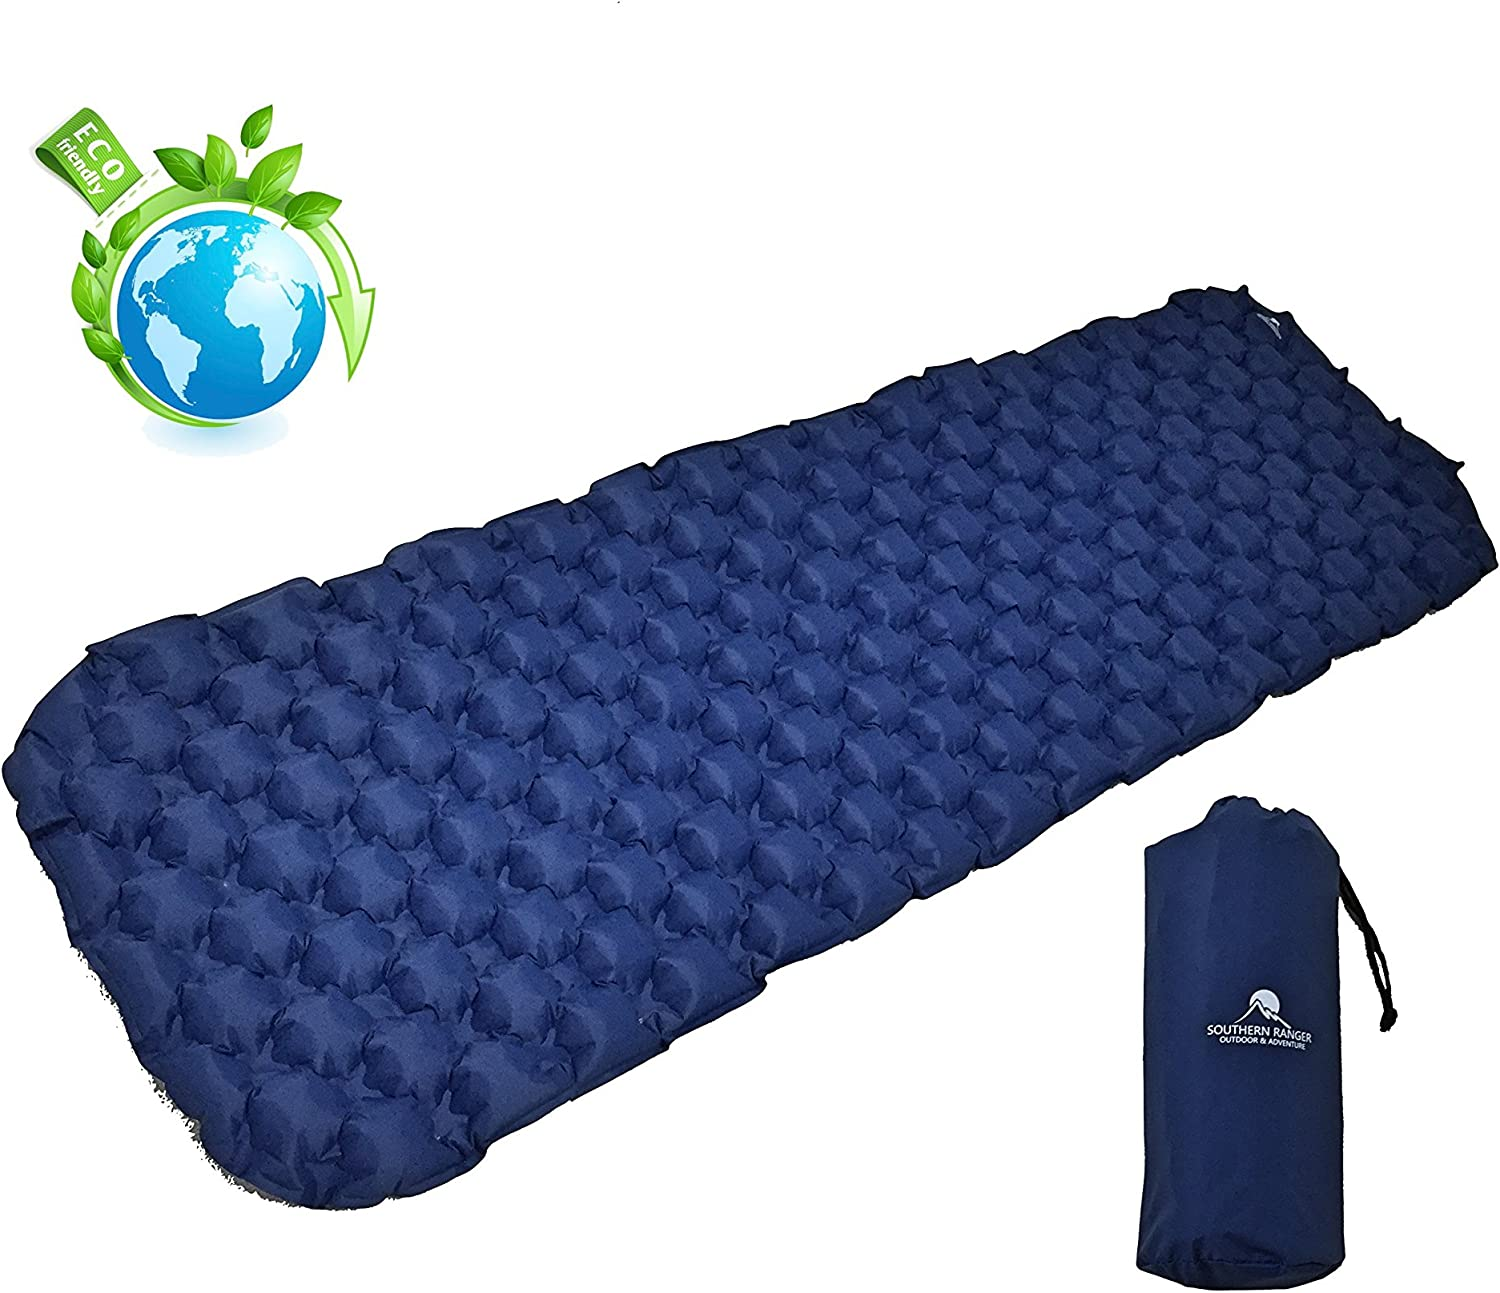 Southern Ranger Ultralight Inflatable Camping Sleeping Pad  Thick Outdoor Air Mattress with Lightweight Bag  Large Bed Size for Men Women or Kids  Compact and Waterproof  Extra Comfortable Sleep